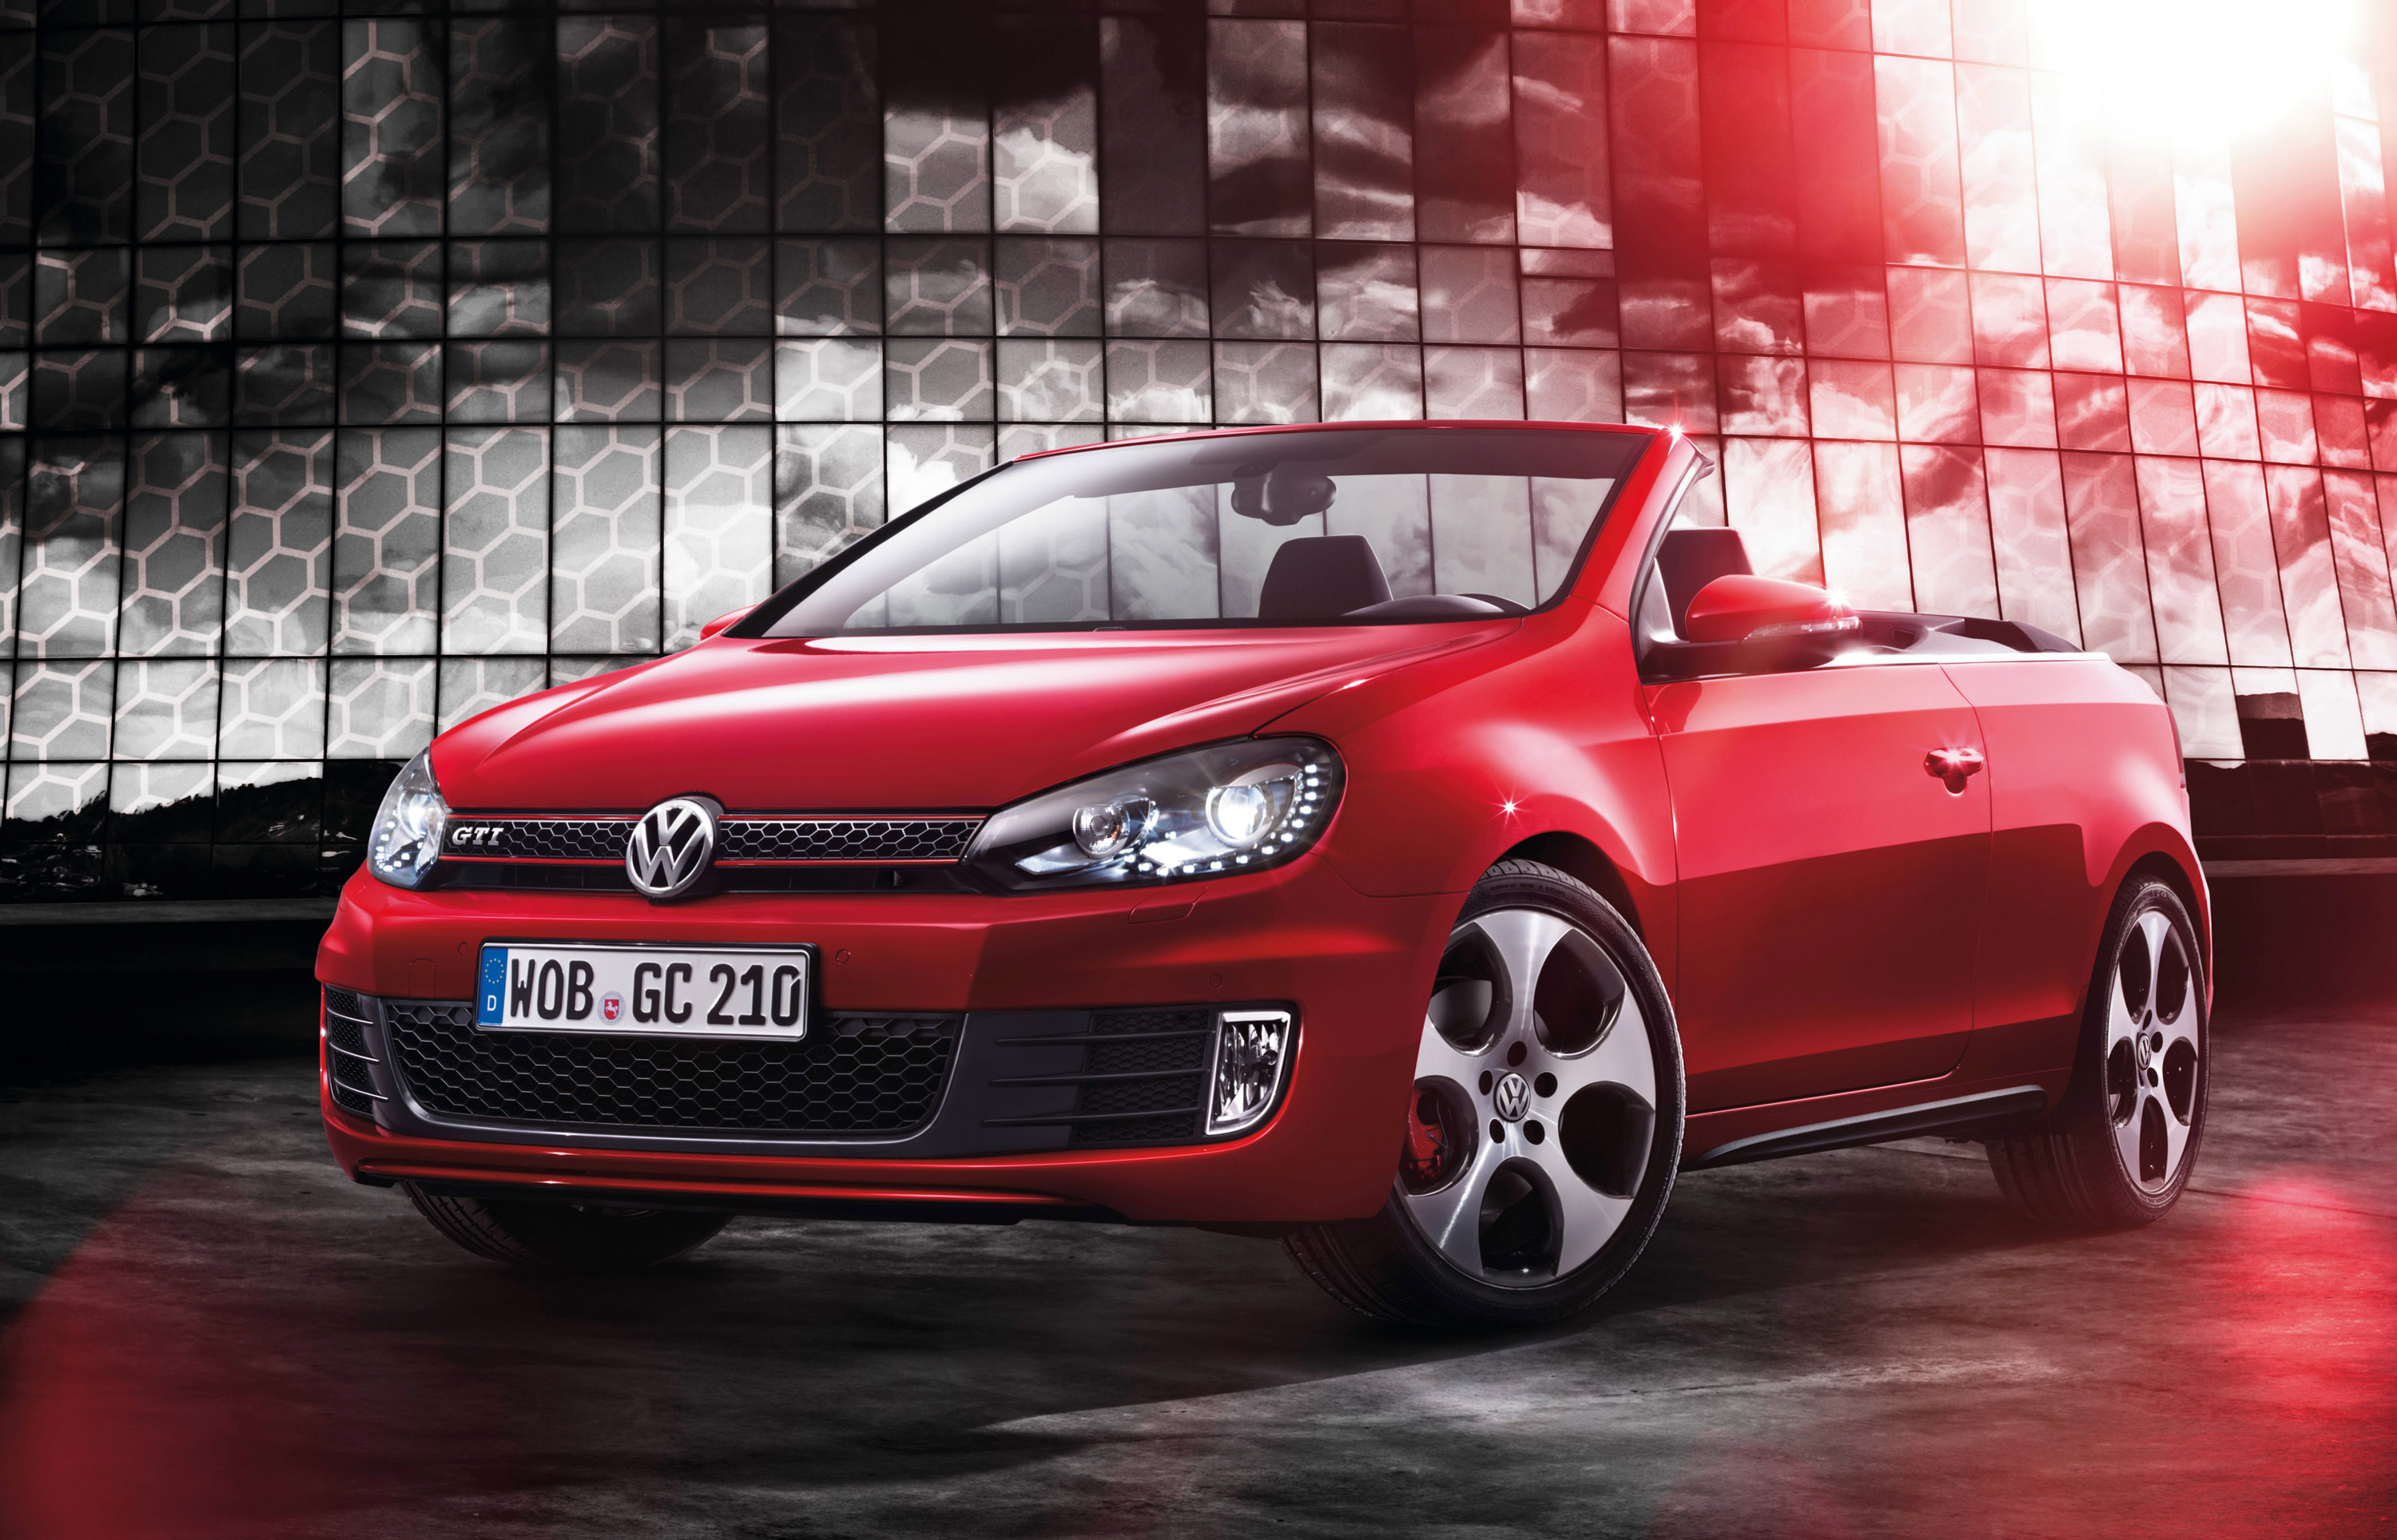 2012 volkswagen golf gti cabriolet combines open air motoring and great performance. Black Bedroom Furniture Sets. Home Design Ideas